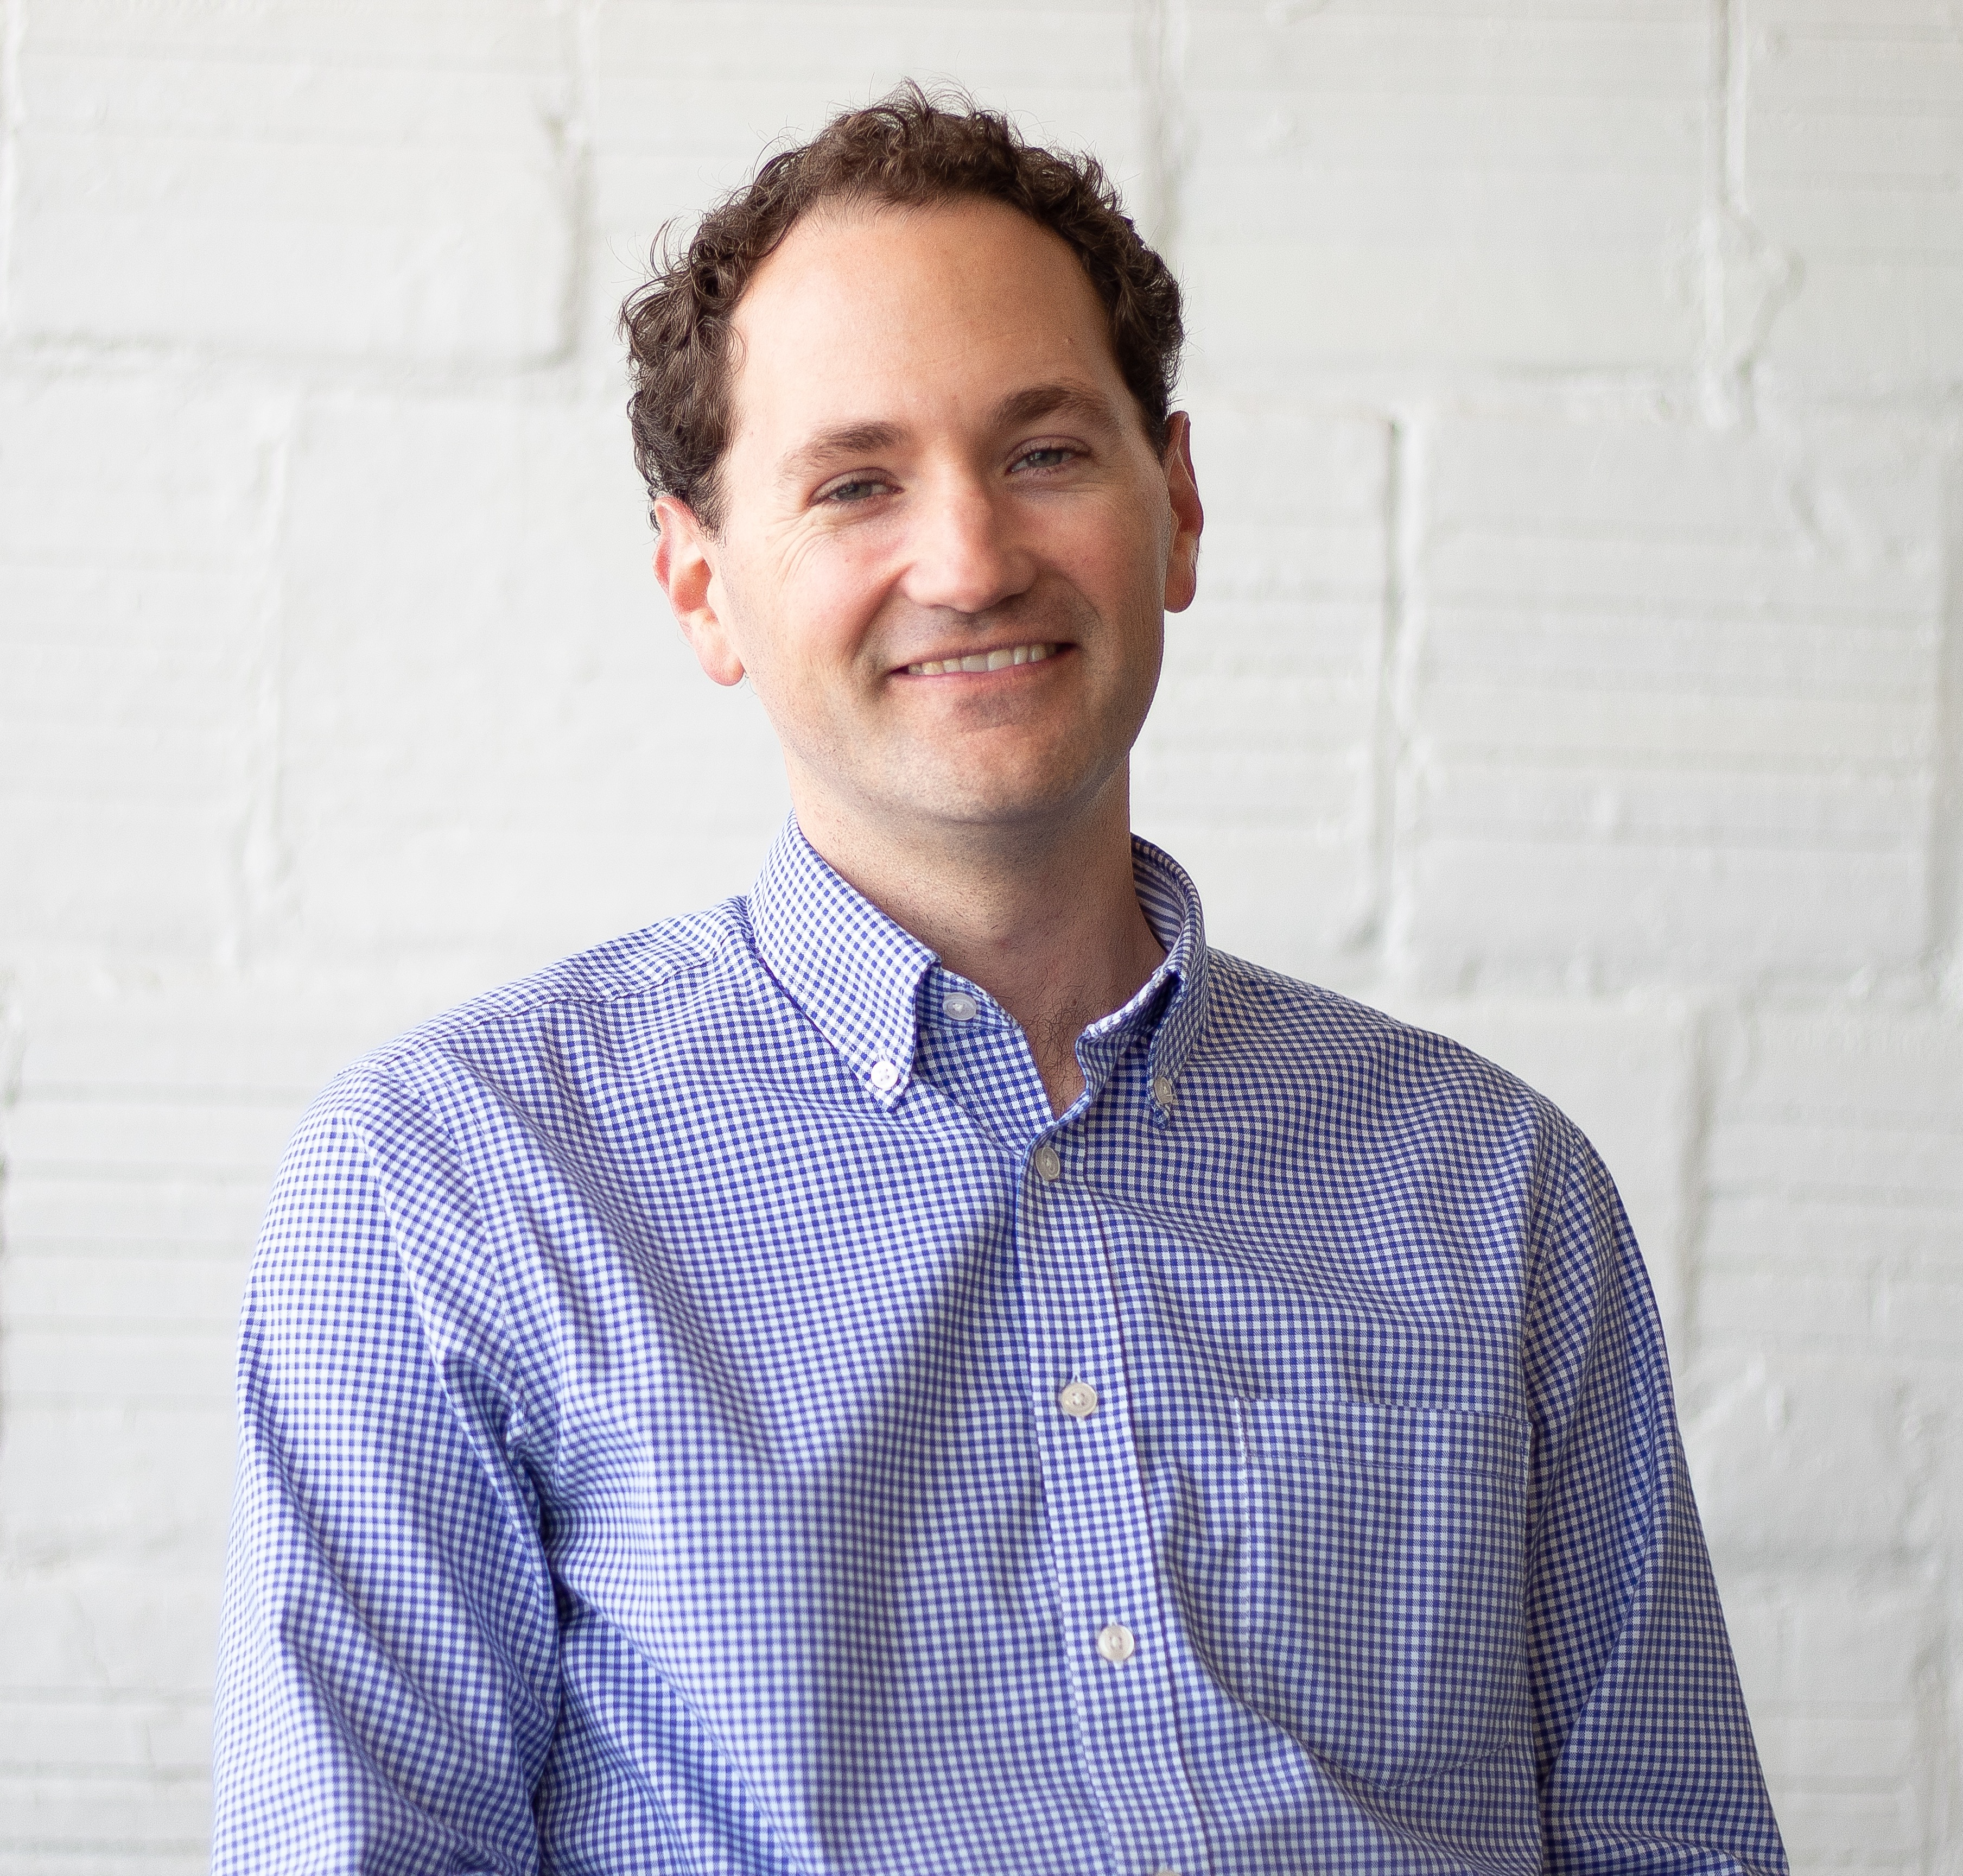 Atticus LeBlanc, Founder and CEO of PadSplit